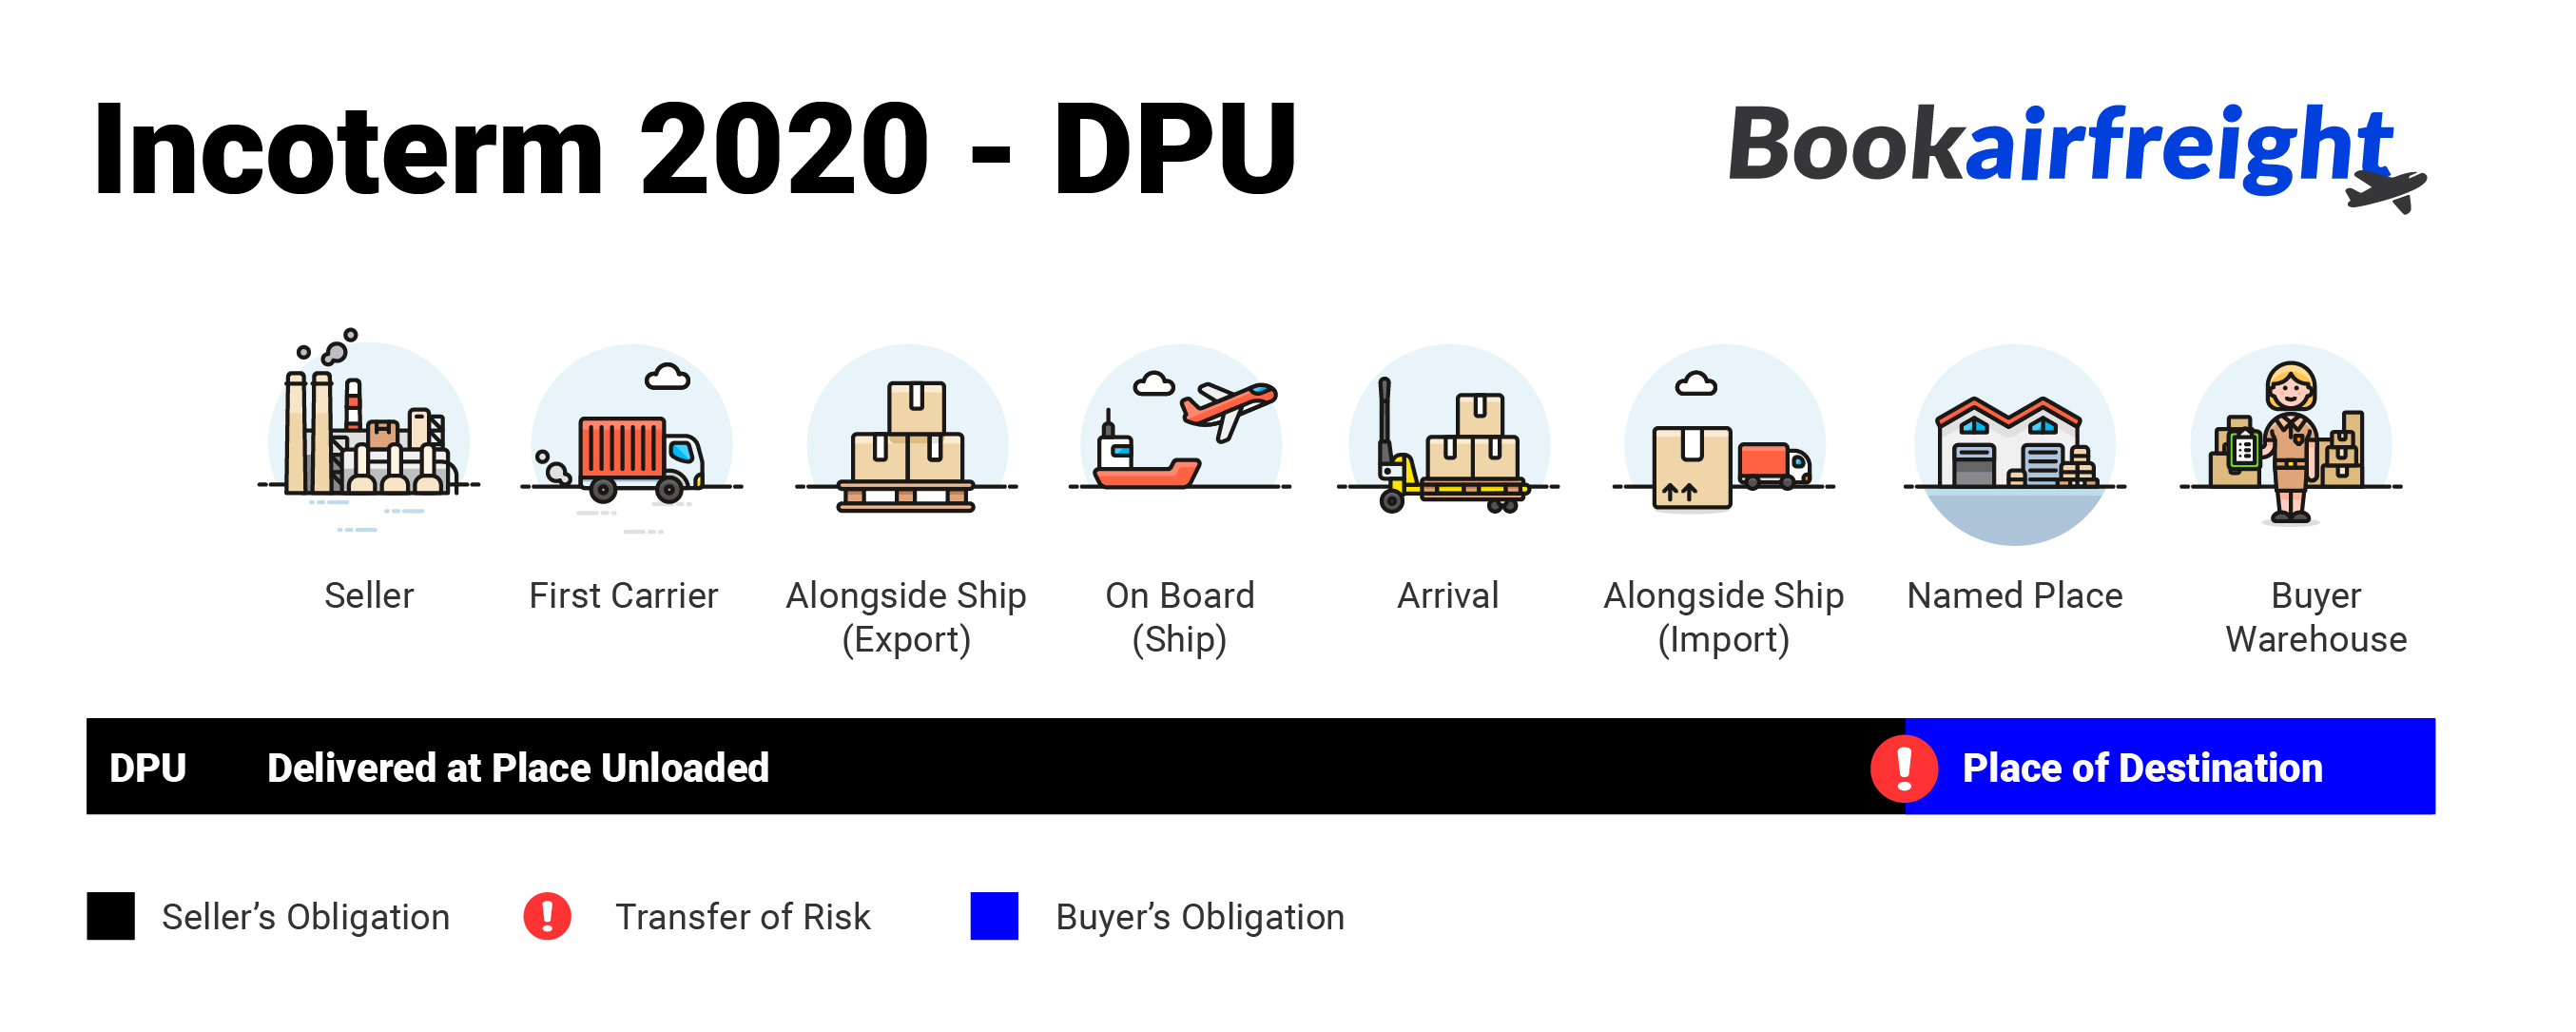 What is Delivered at Place Unloaded (DPU)?